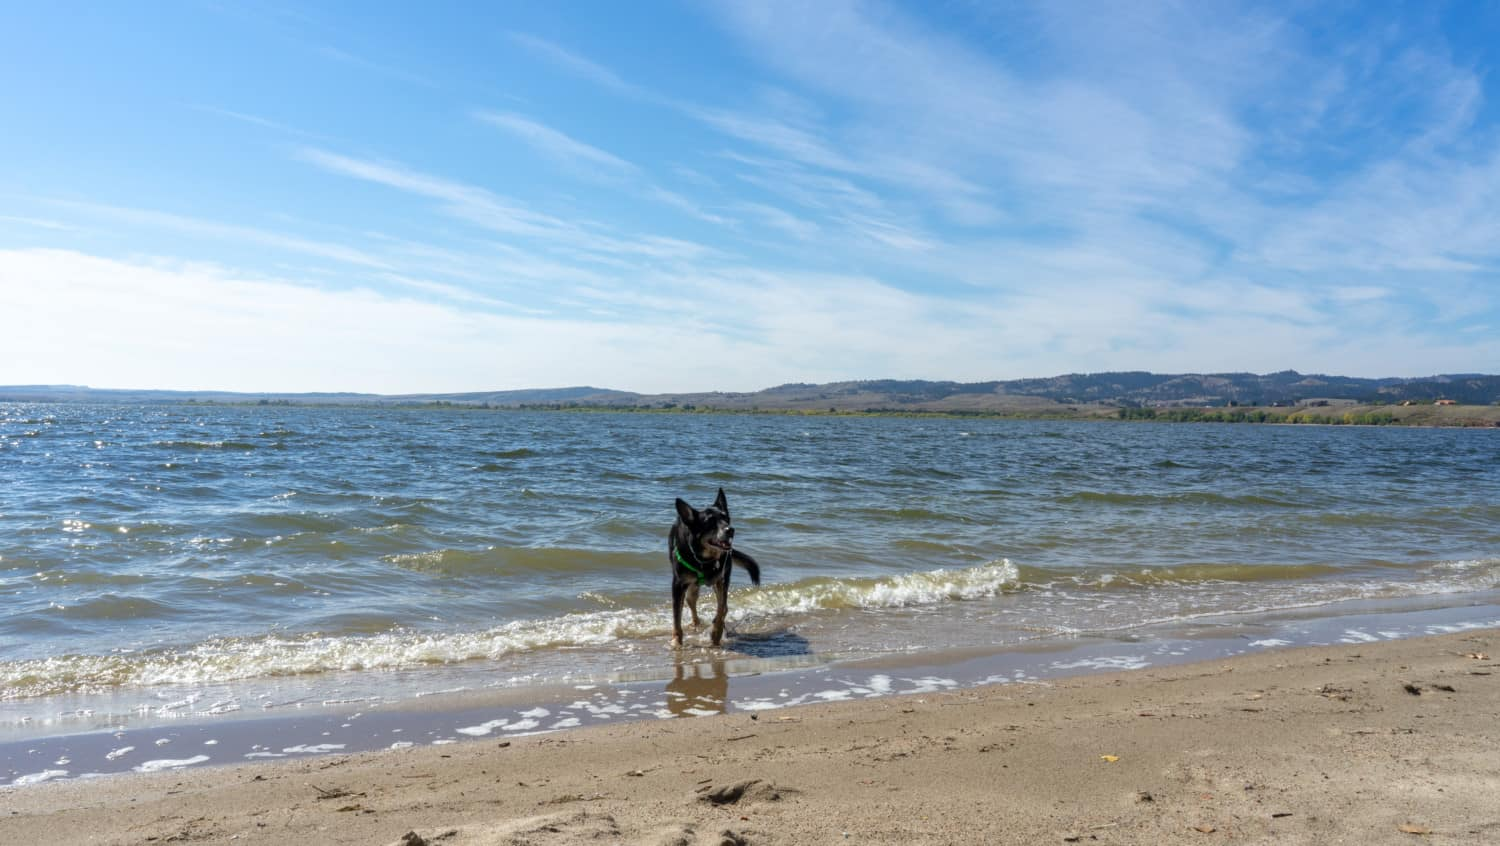 Buster the German Shepherd from GoPetFriendly.com leash-free on the pet-friendly beach at Angostura Recreation Area, SD